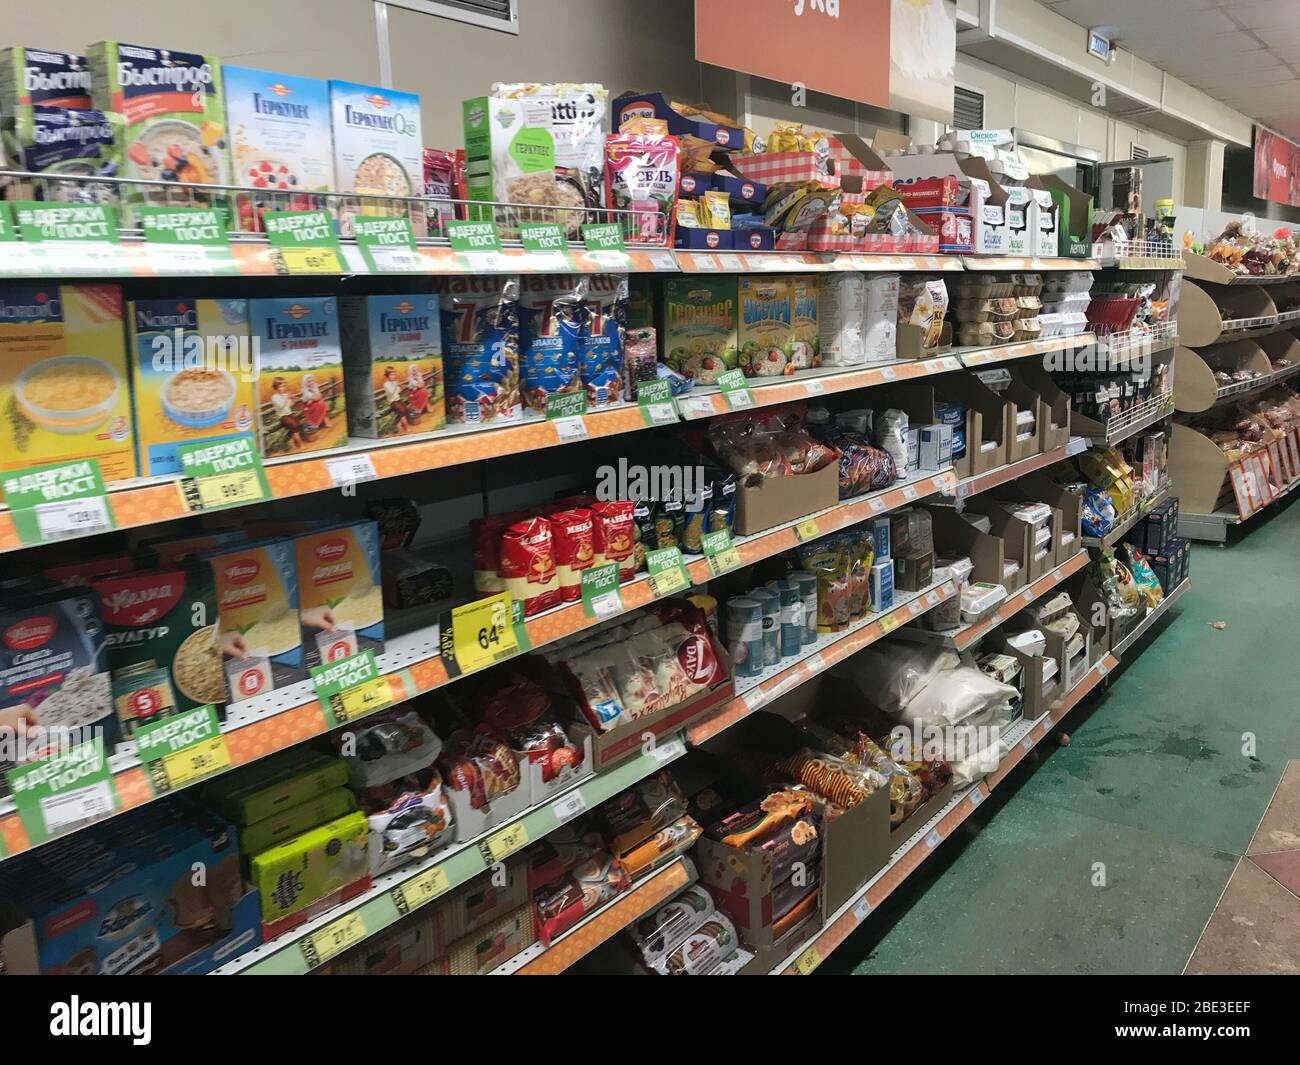 KOLOMNA, RUSSIA - MARCH, 23, 2020: Shelves and racks in Dixie Shop store during a panic and quarantine for coronavirus in Russia Stock Photo